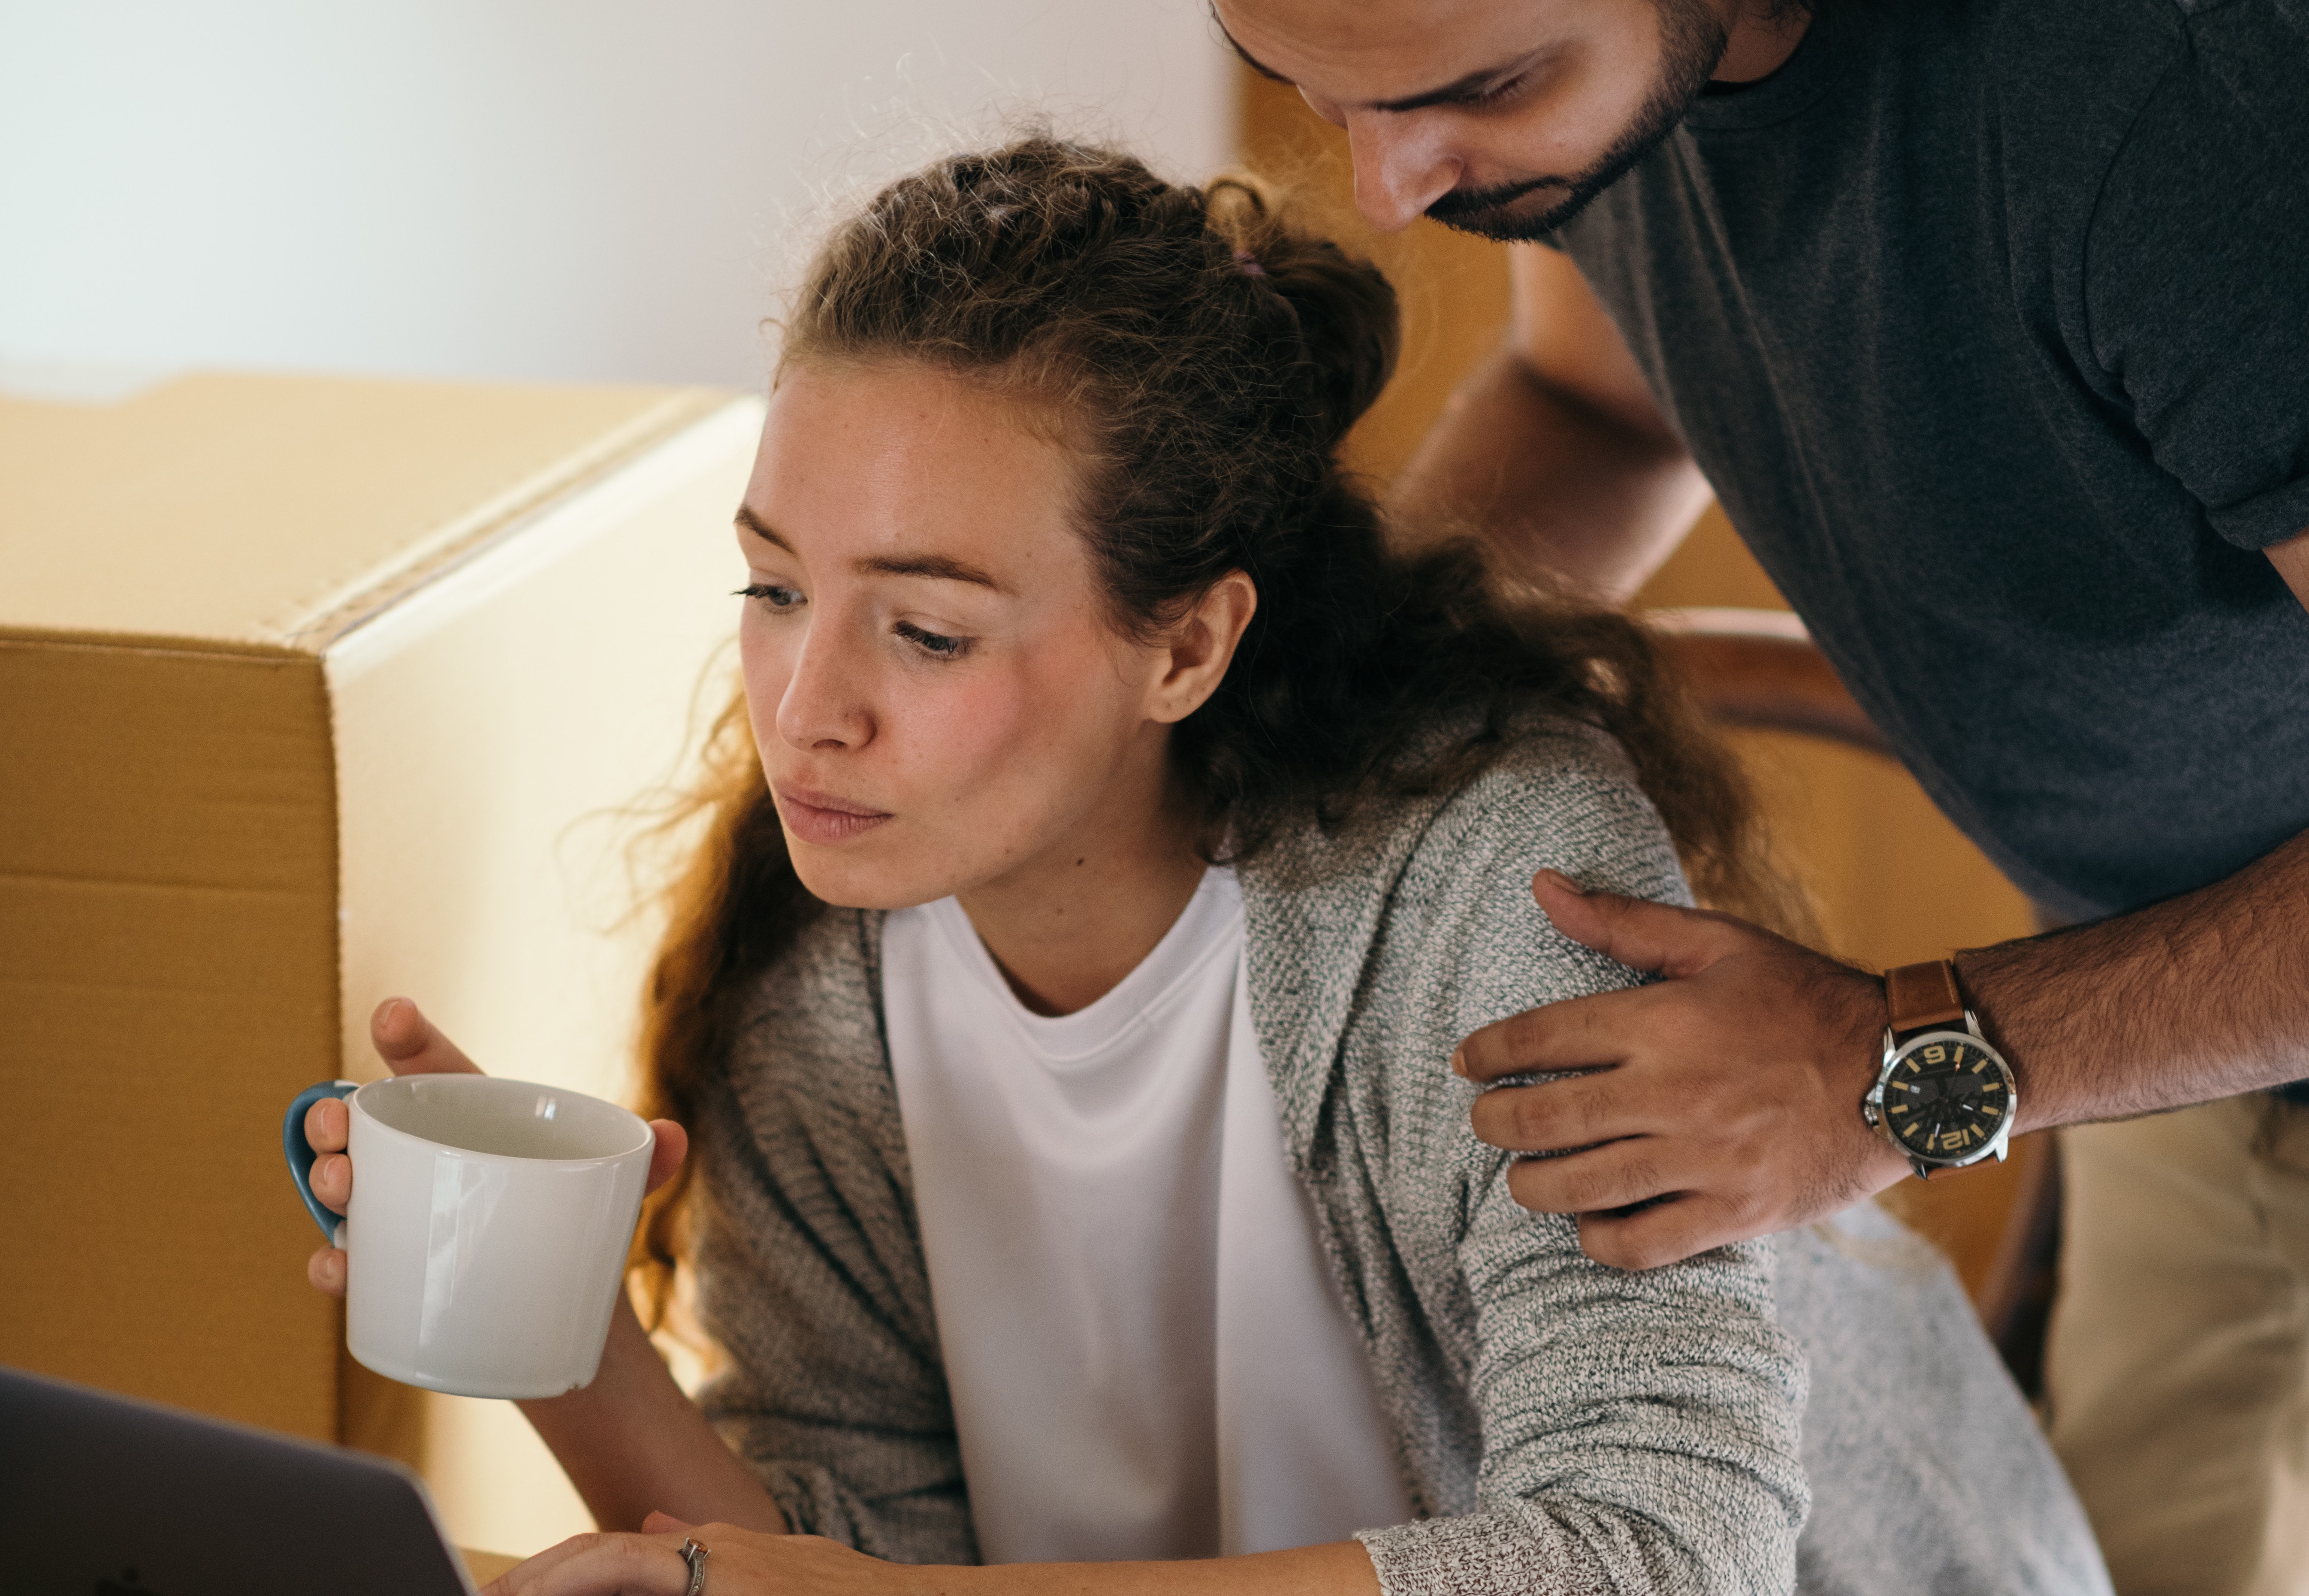 young-couple-using-laptop-in-room-full-of-packed-boxes-4247719